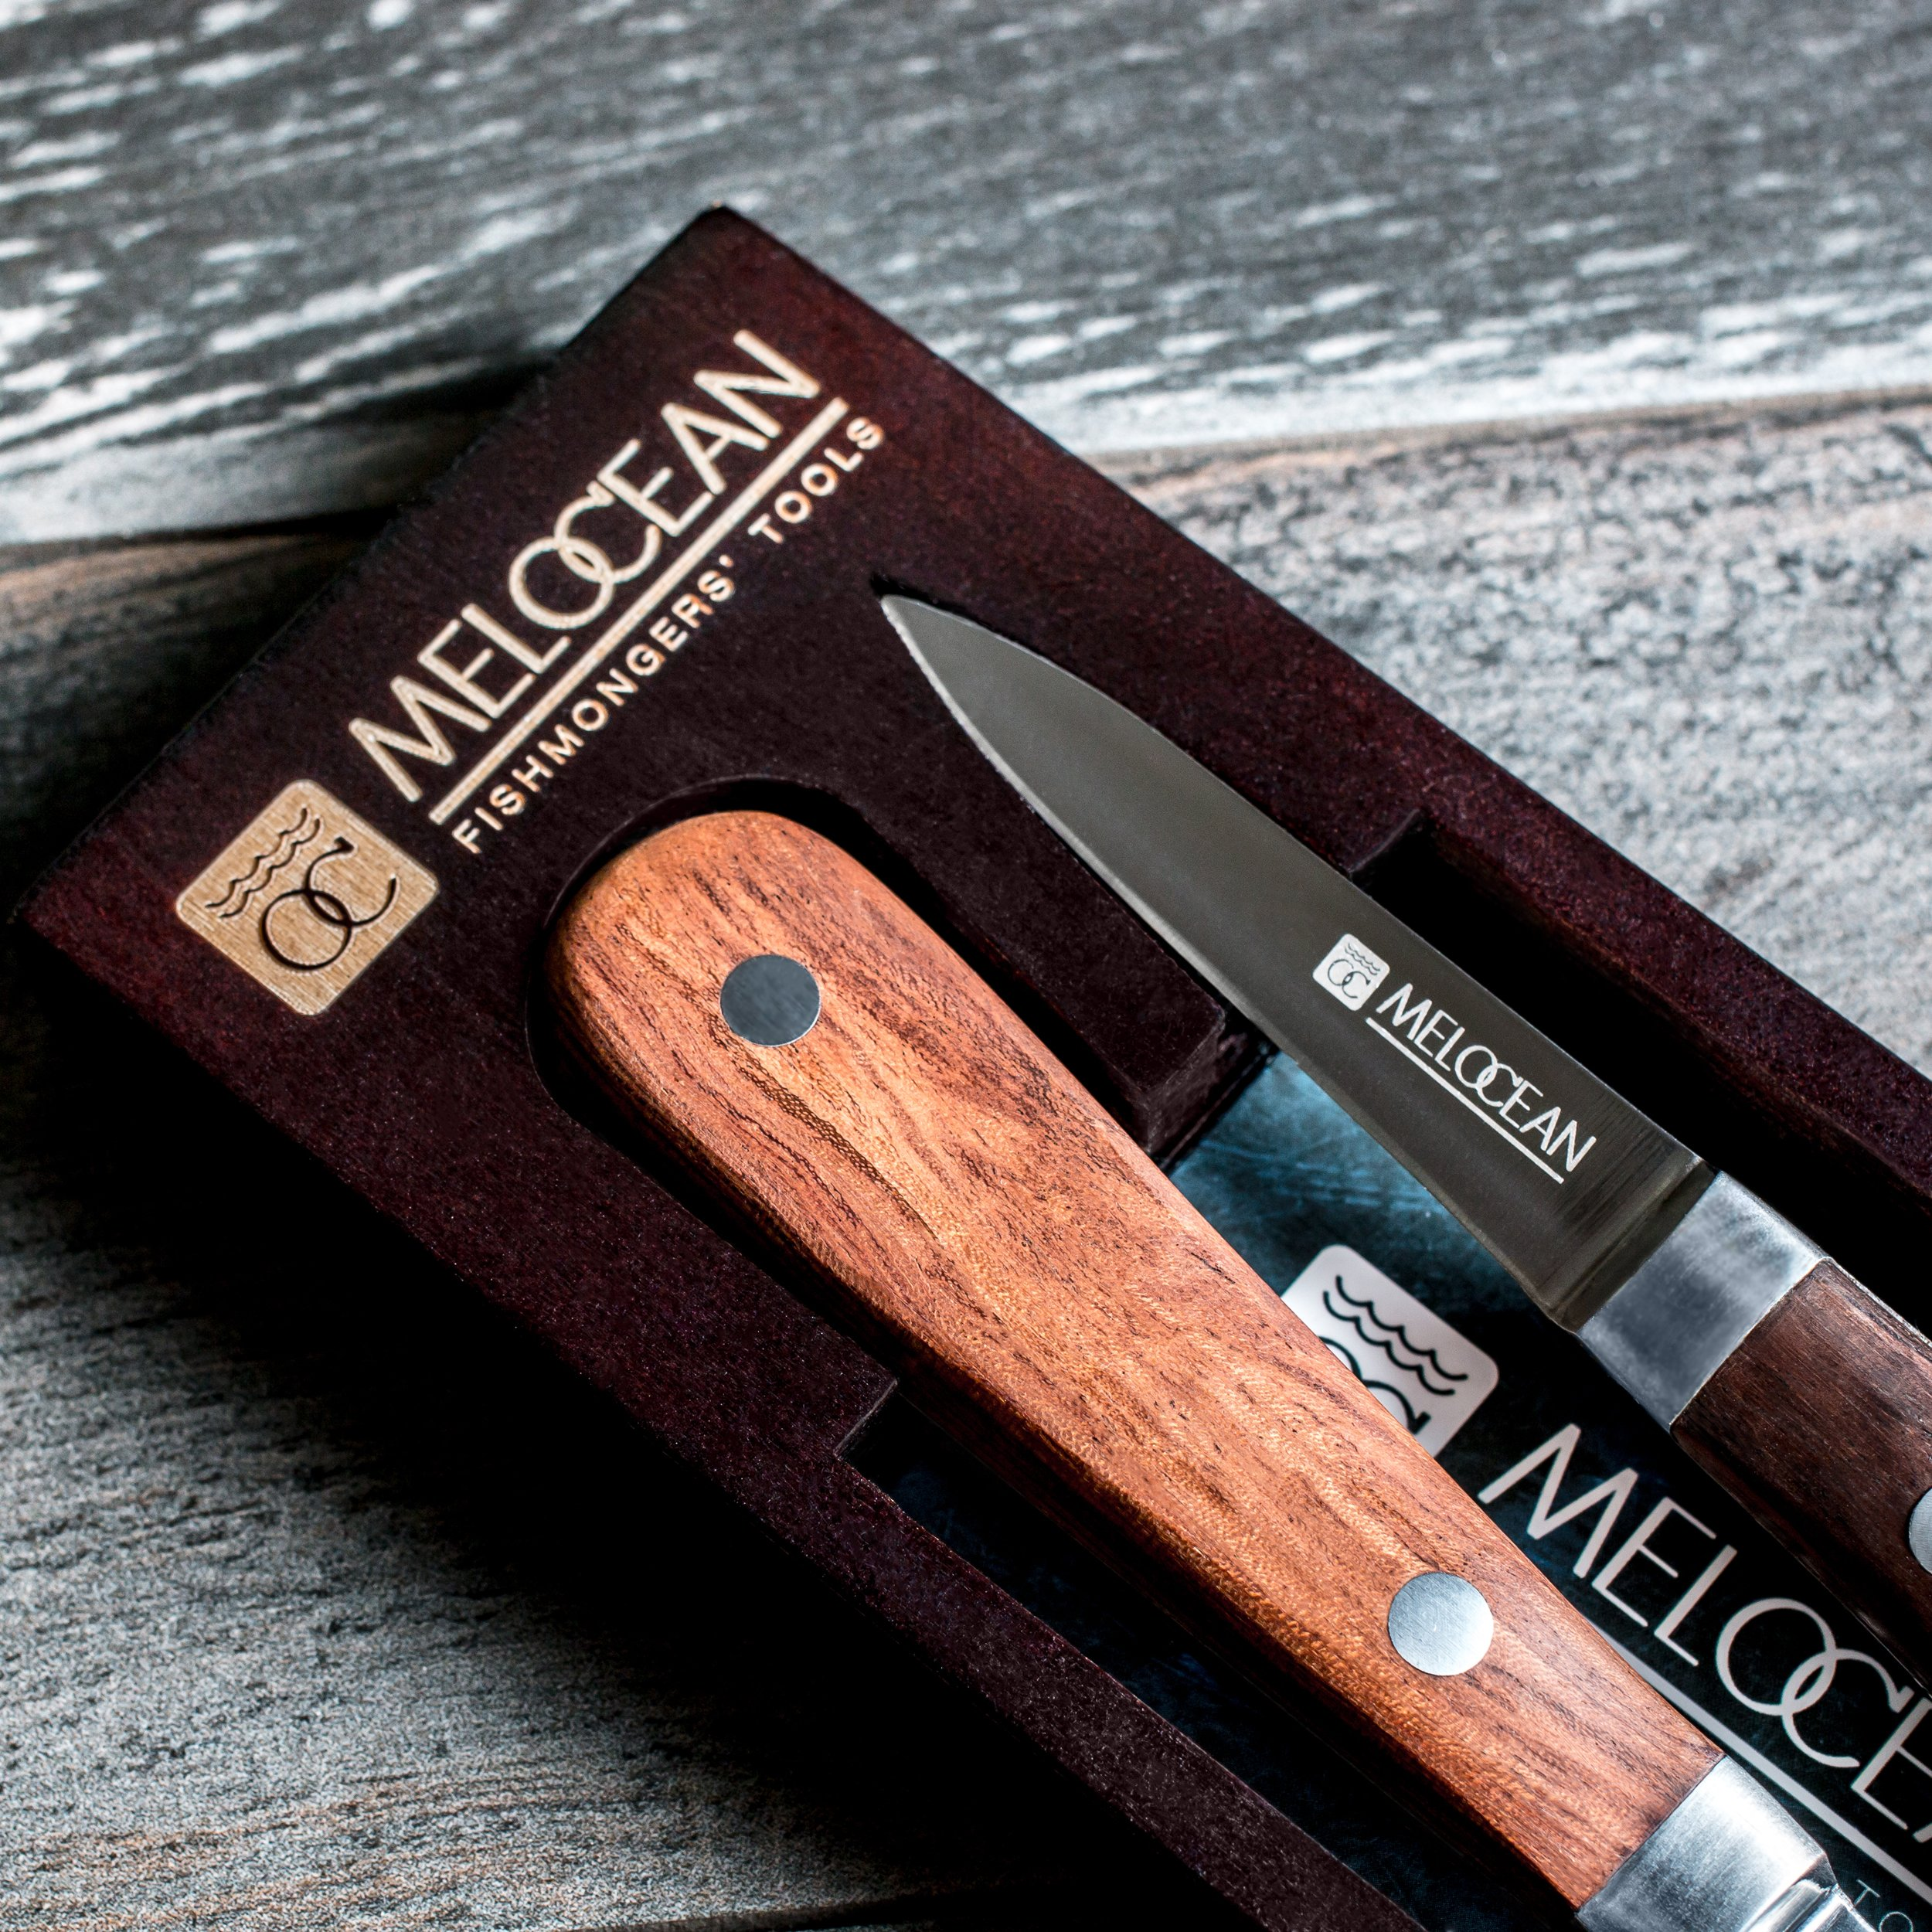 Oyster Shucking Knife Set of 2 - Professional Oyster Knife Shucker Clam Opener Kit in Lovely Box - Bonus Ebook and Brochure Included by Melocean